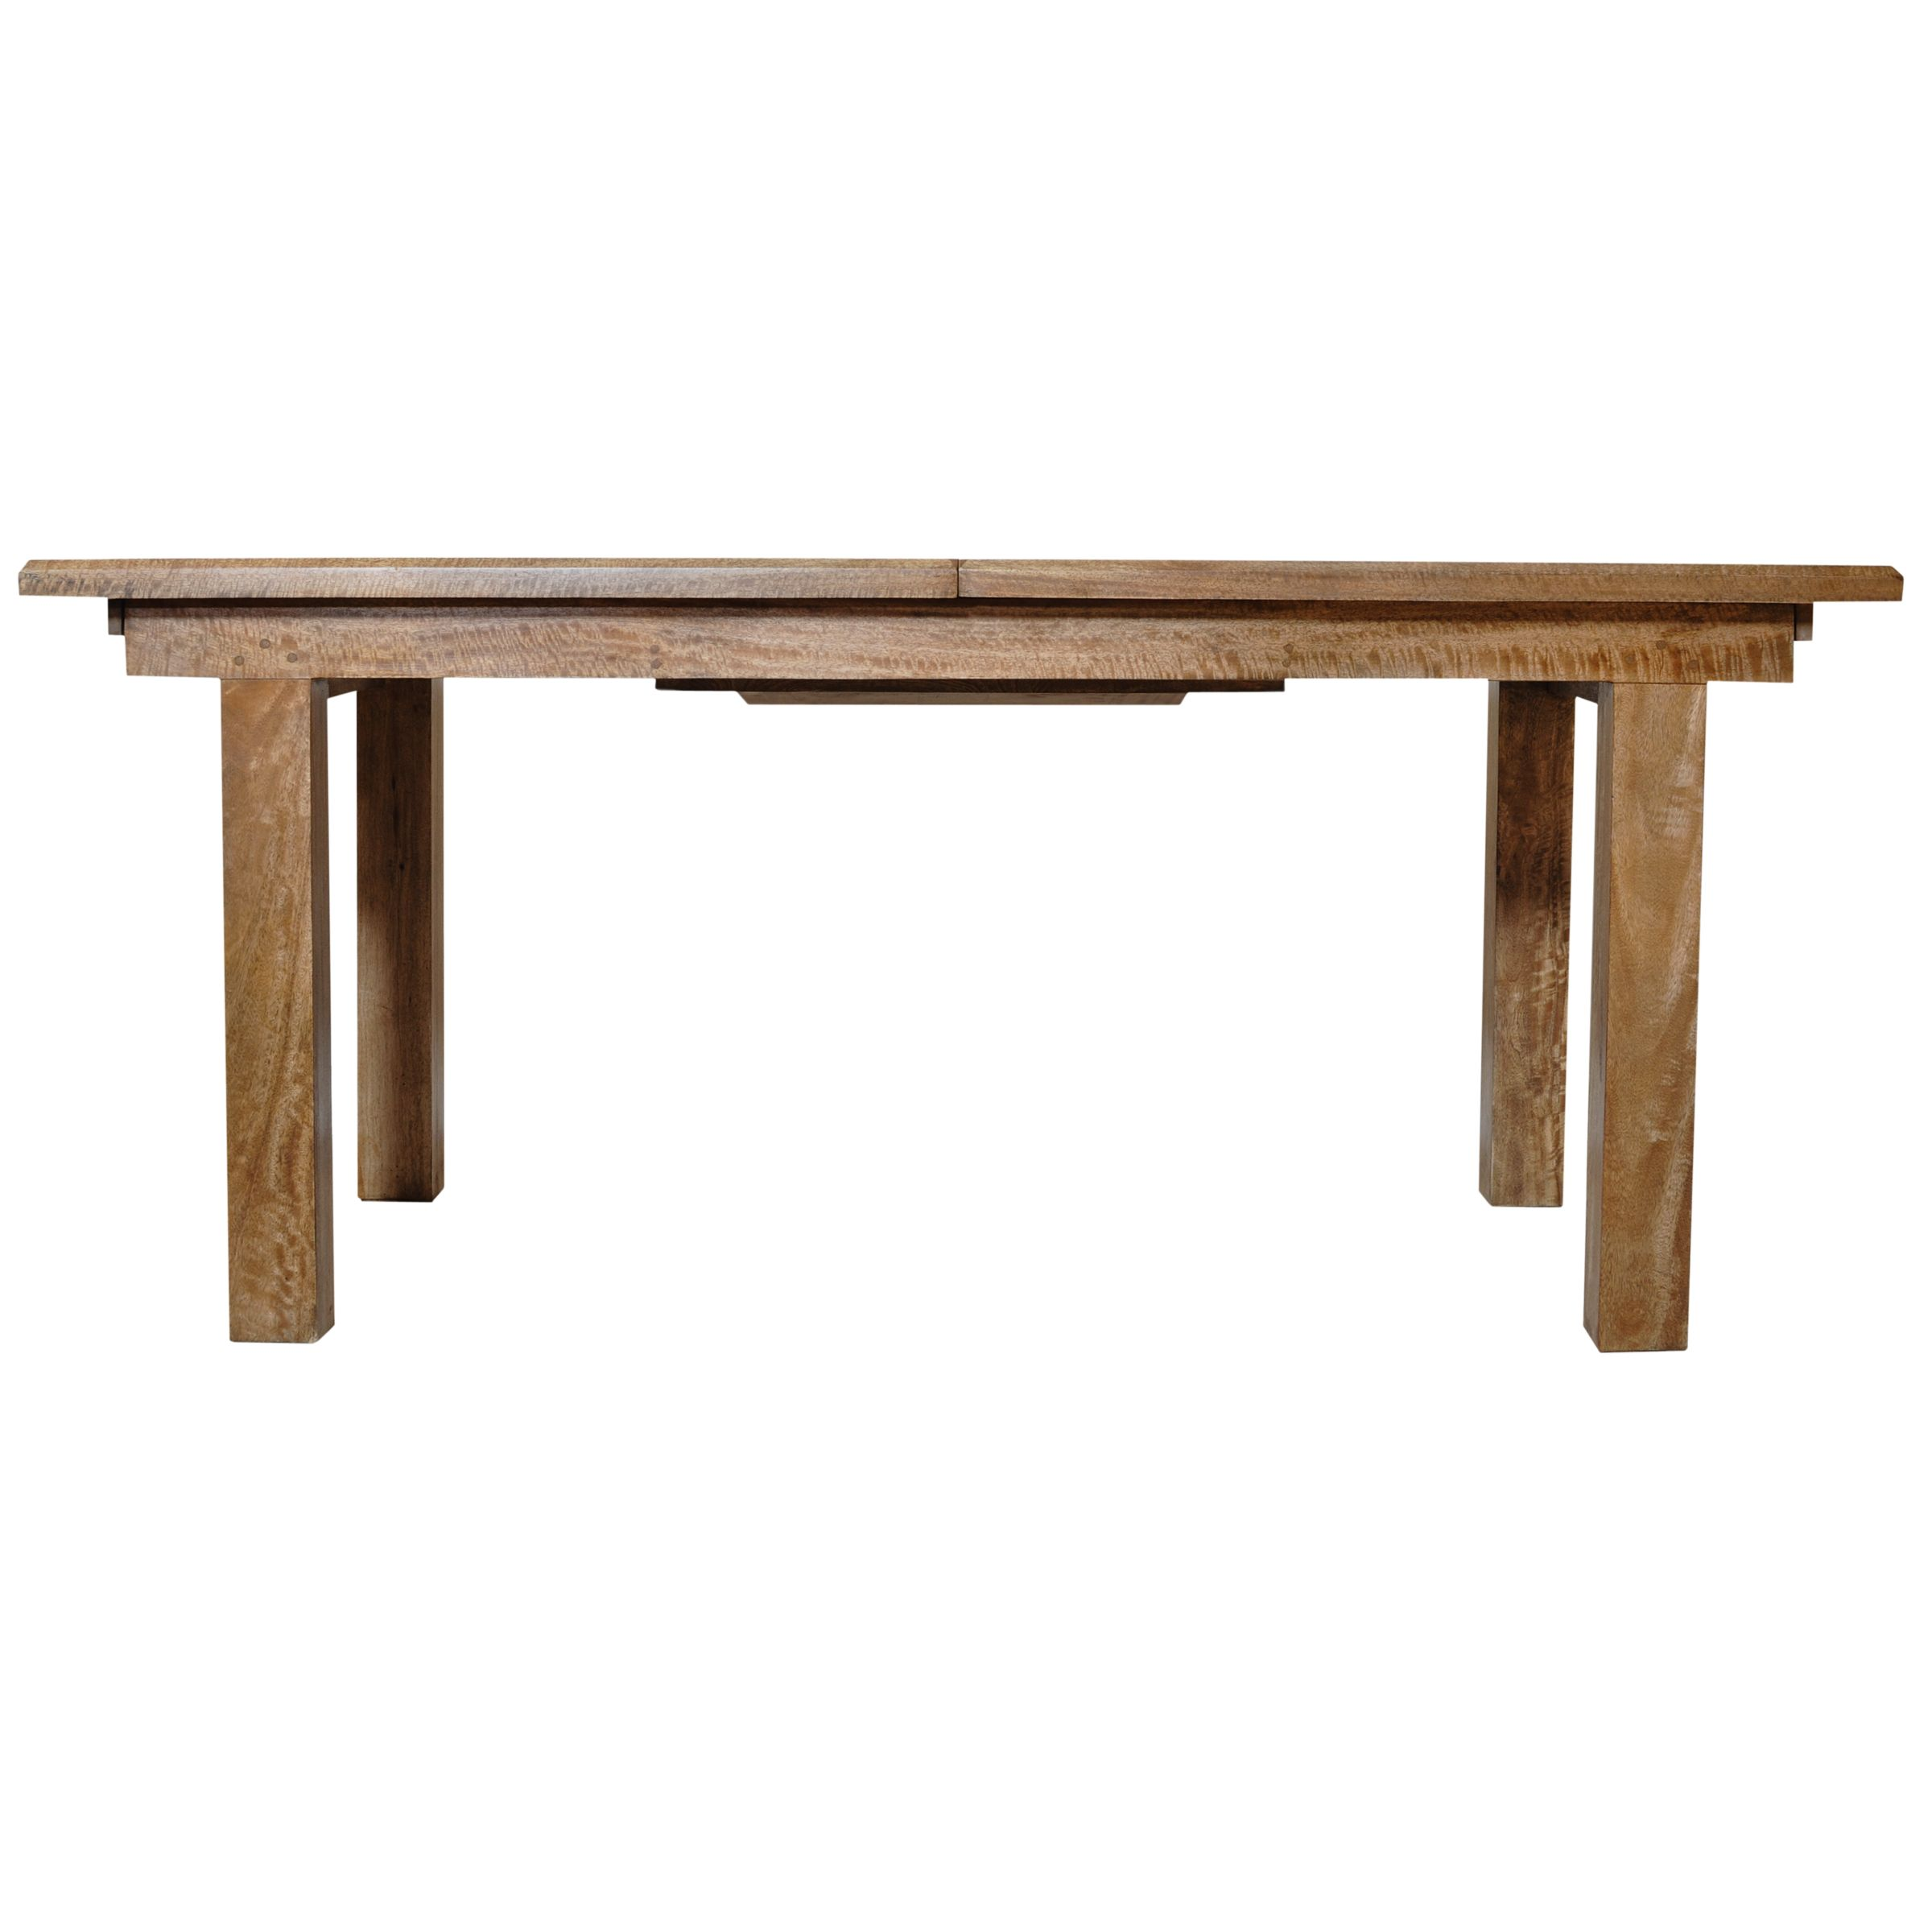 john lewis dining tables : 230729864 from www.comparestoreprices.co.uk size 2400 x 2400 jpeg 179kB